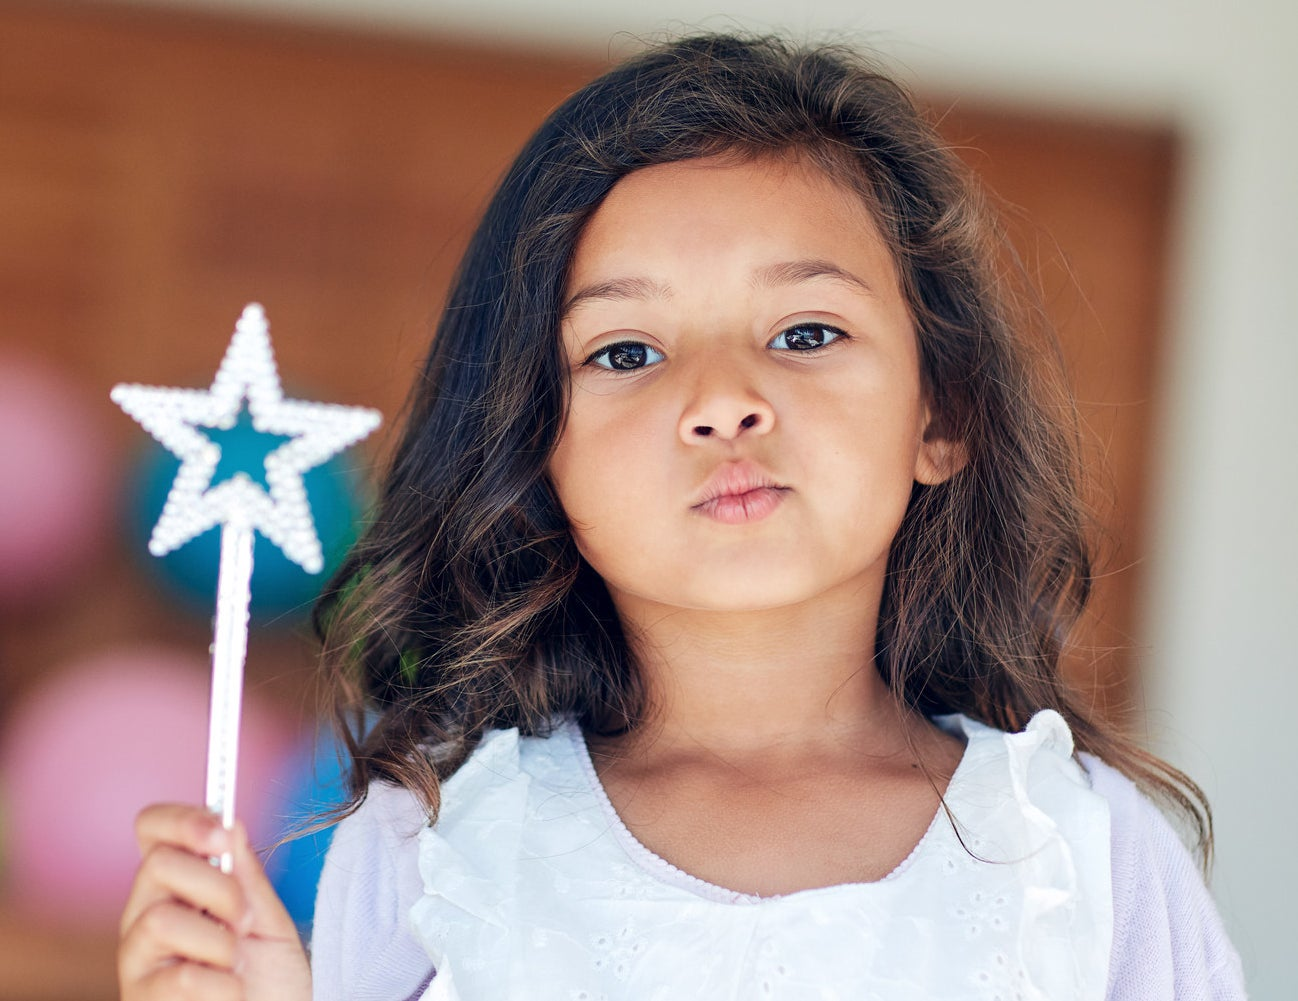 girl holding plastic wand with no expression